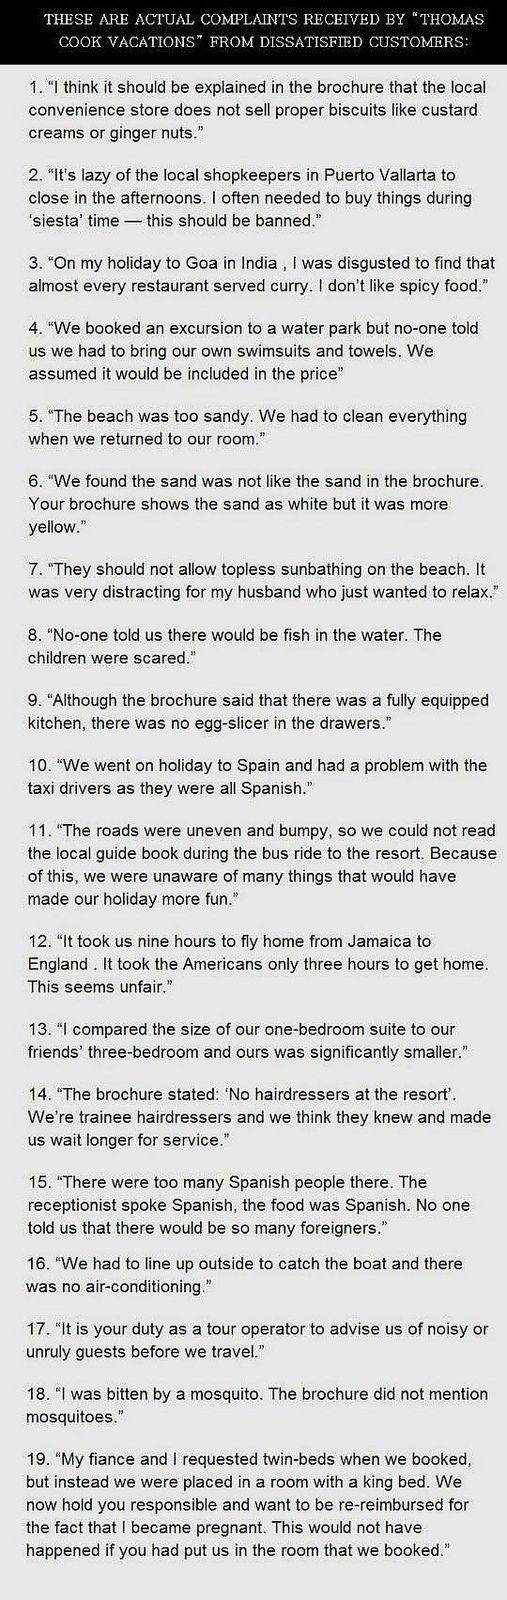 TRAVEL HUMOR: Actual complaints from Thomas Cook clients - Take a vacay with Vacayster.com